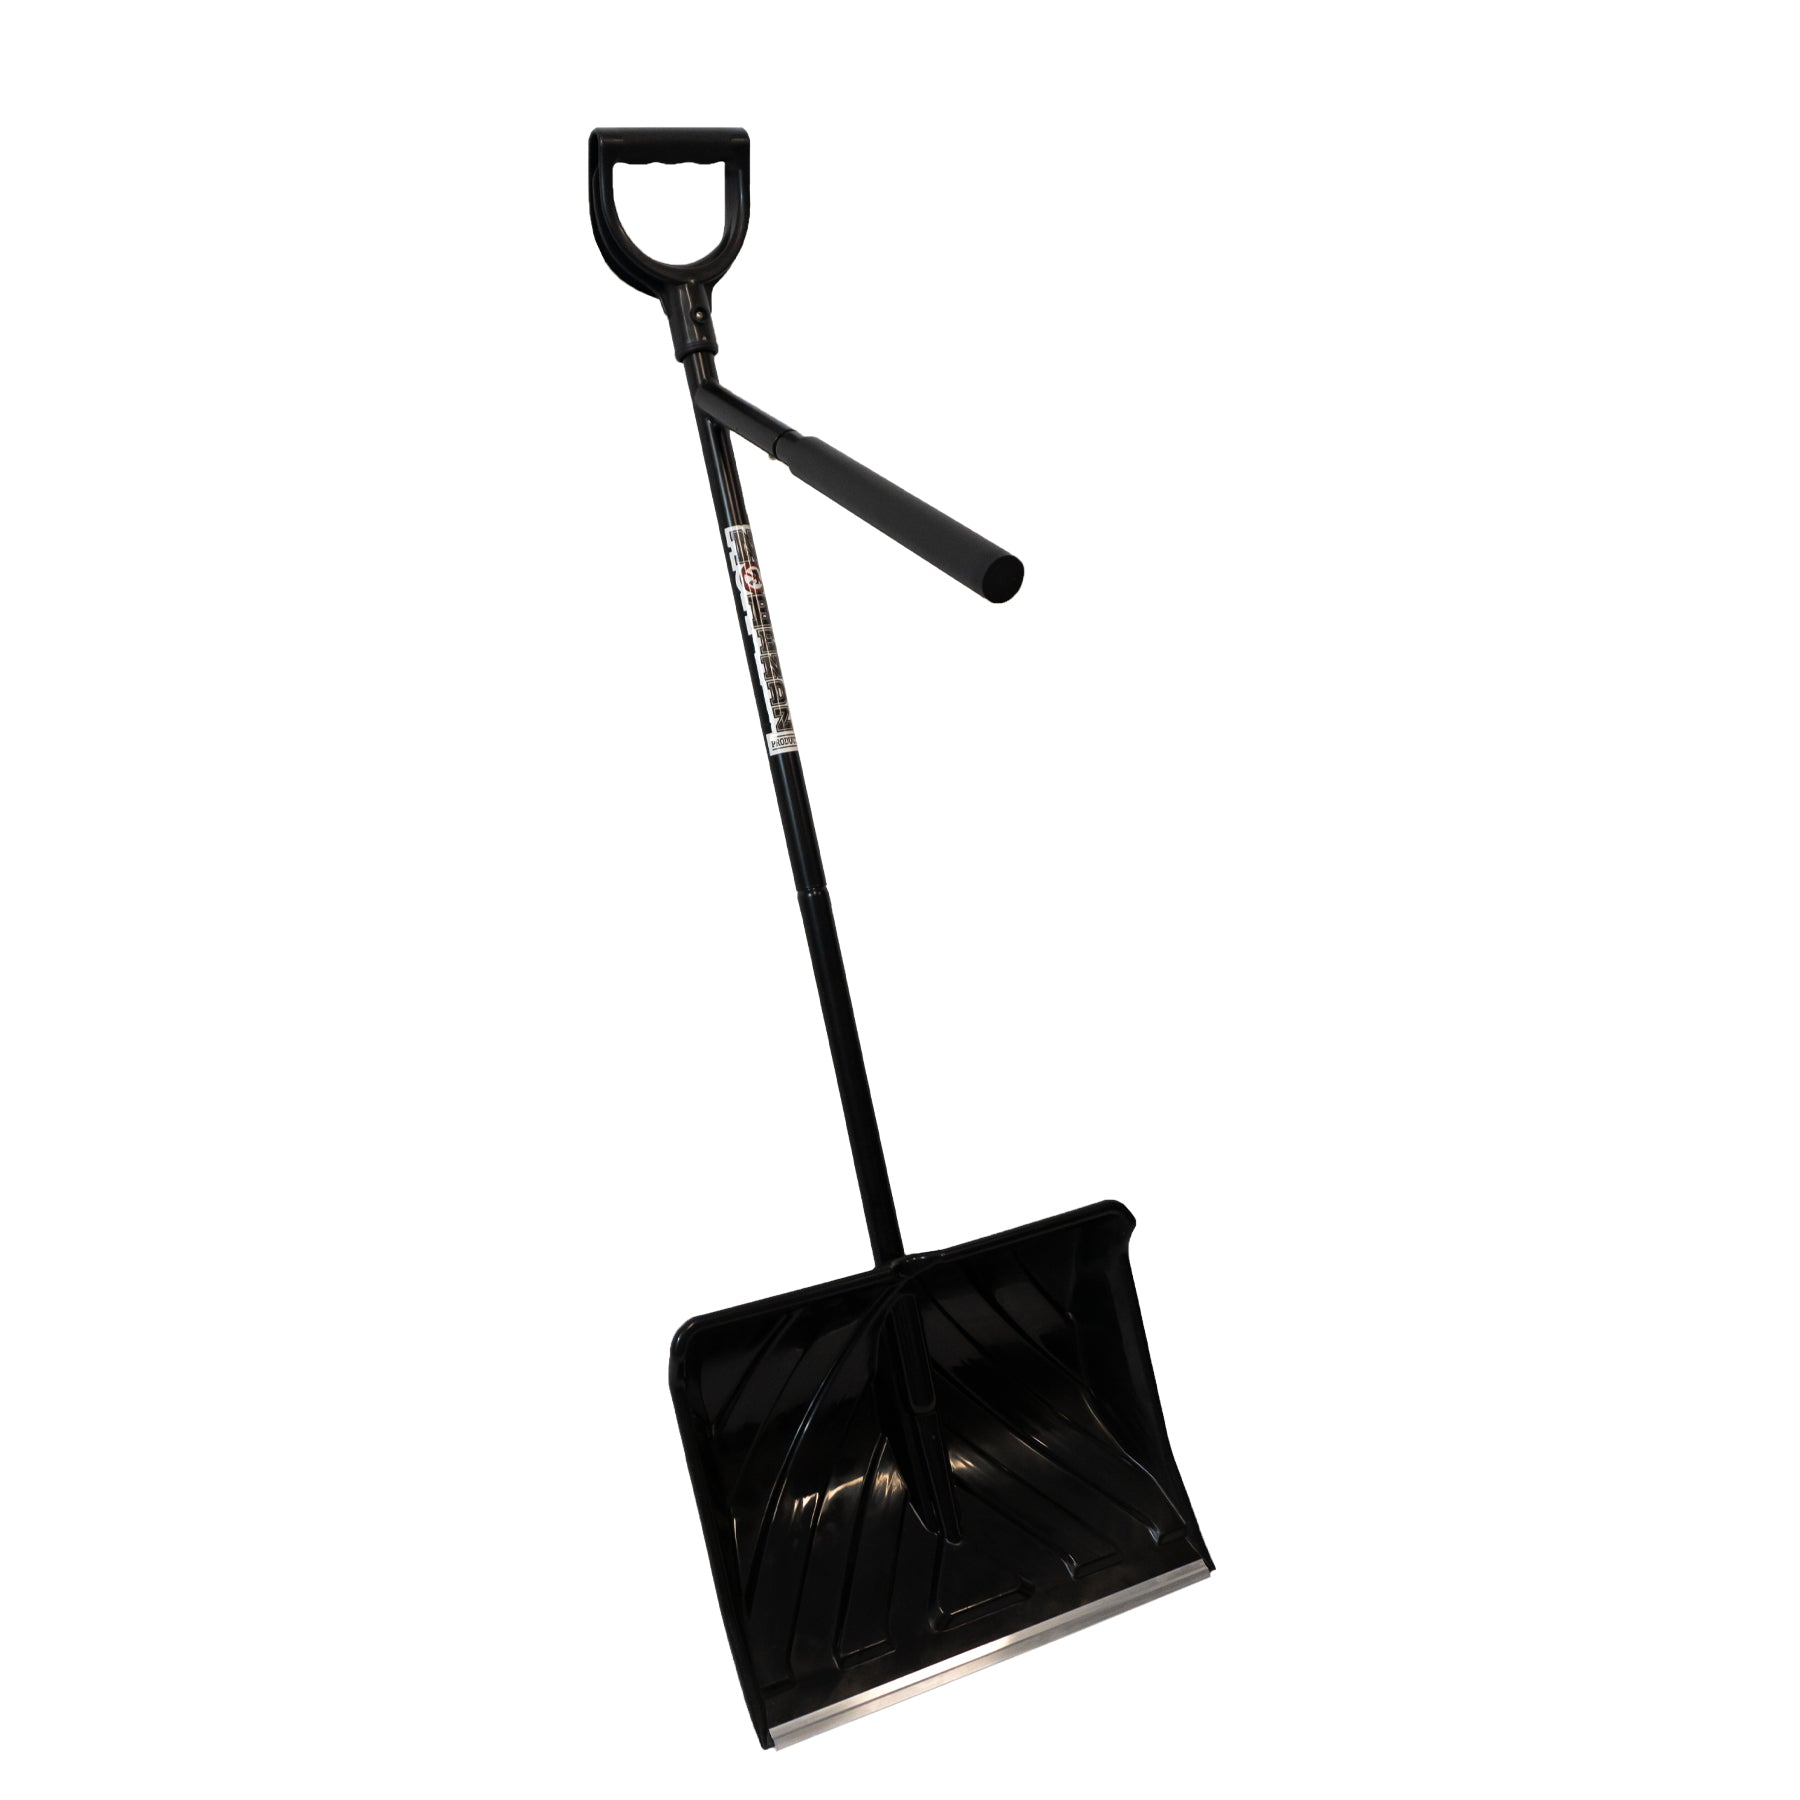 NoBendz Snow Shovel – SOLD OUT for this season. The response was incredible. Thank you to all our customers! Please leave your email below for updates and new product announcements.